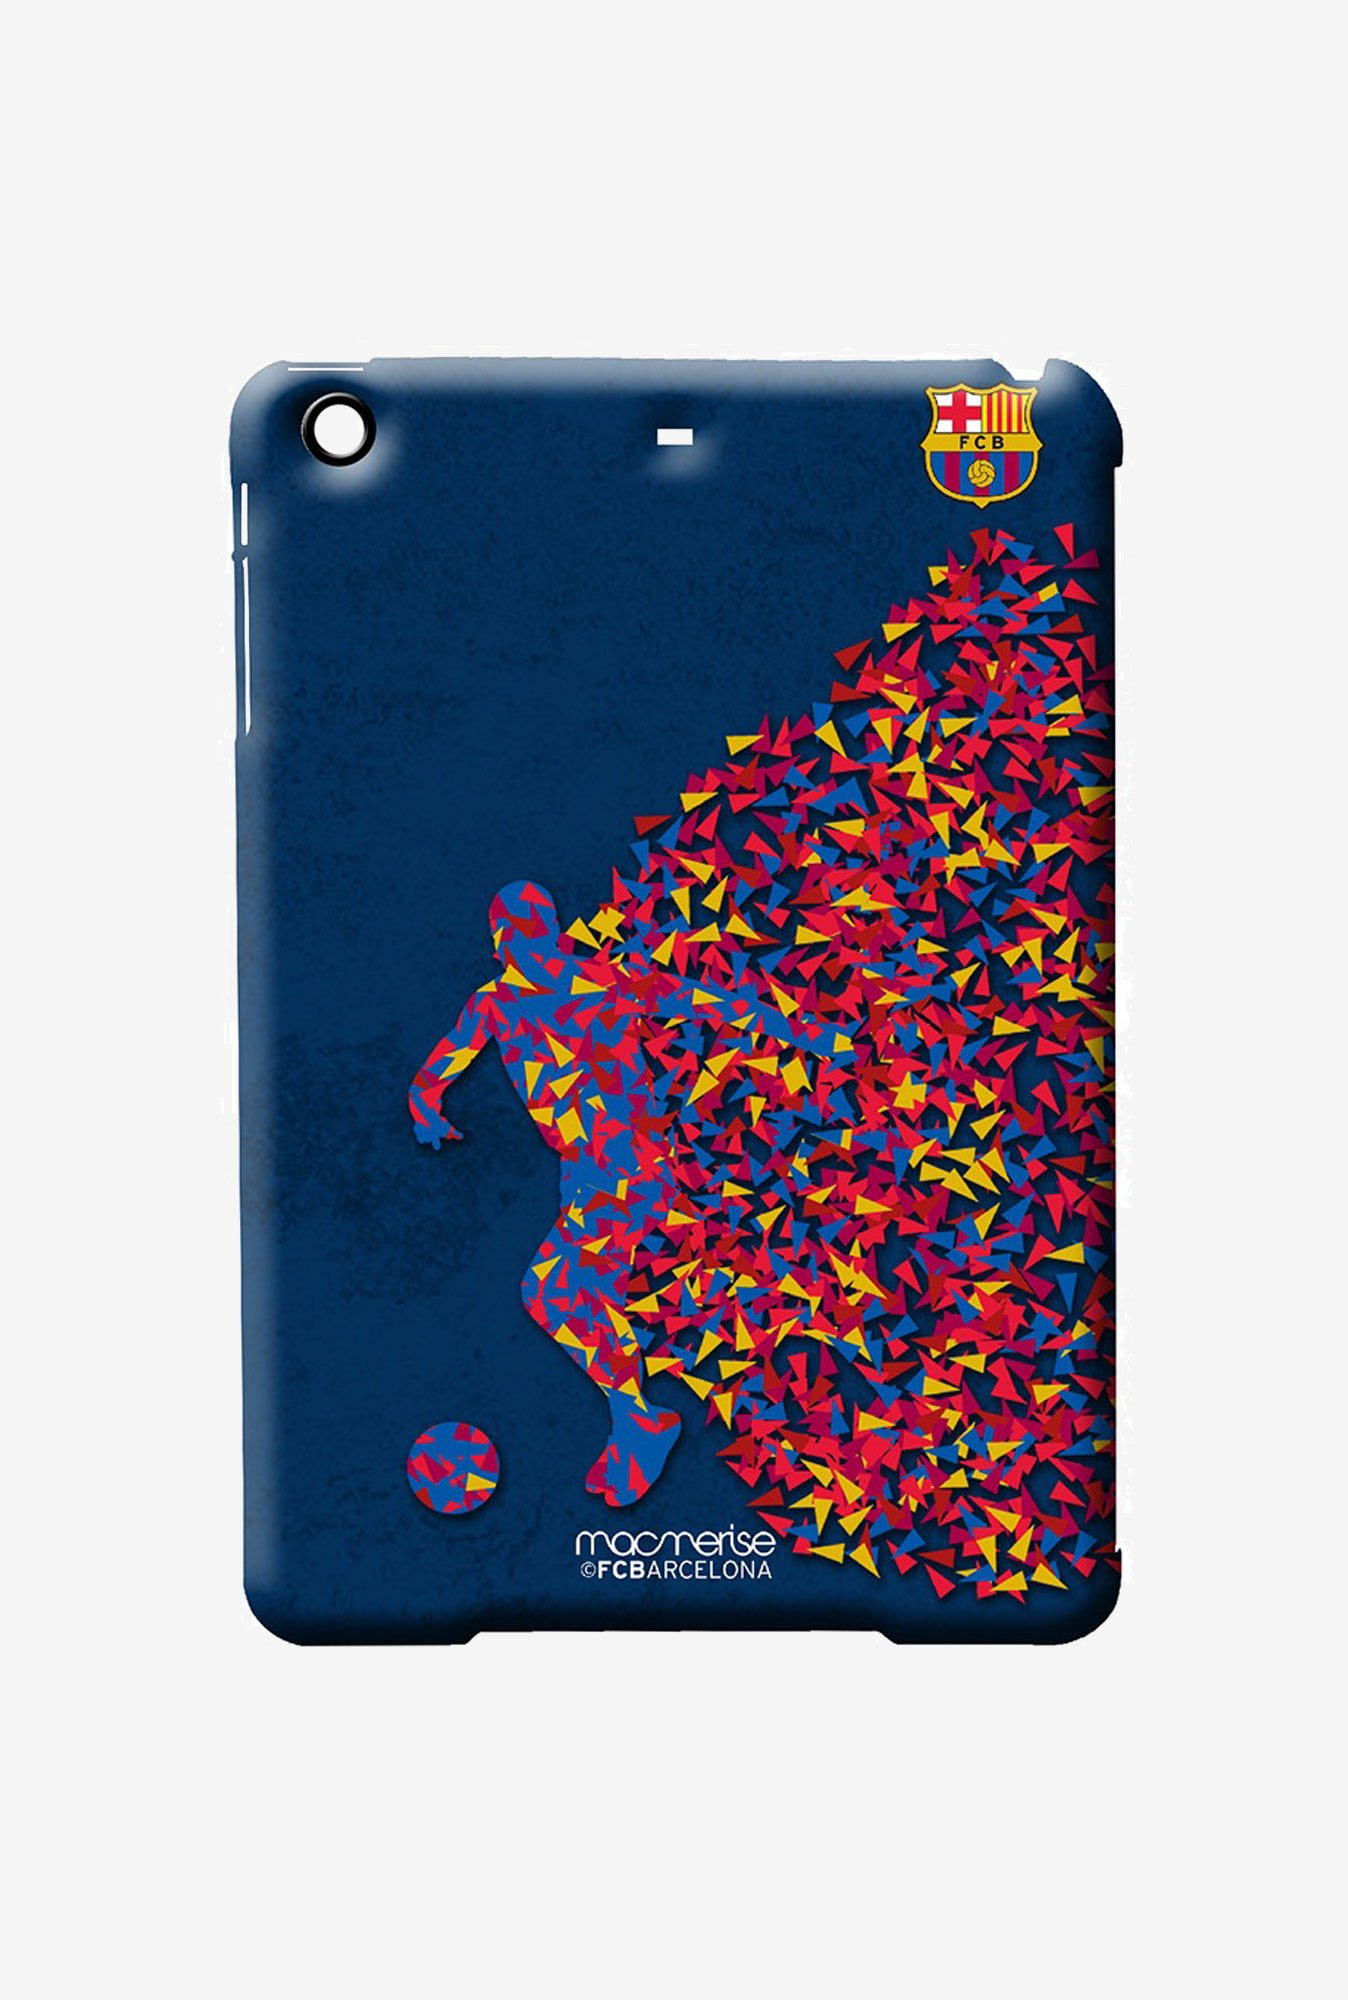 Macmerise FCB Asymmetrical Art Pro Case for iPad Air